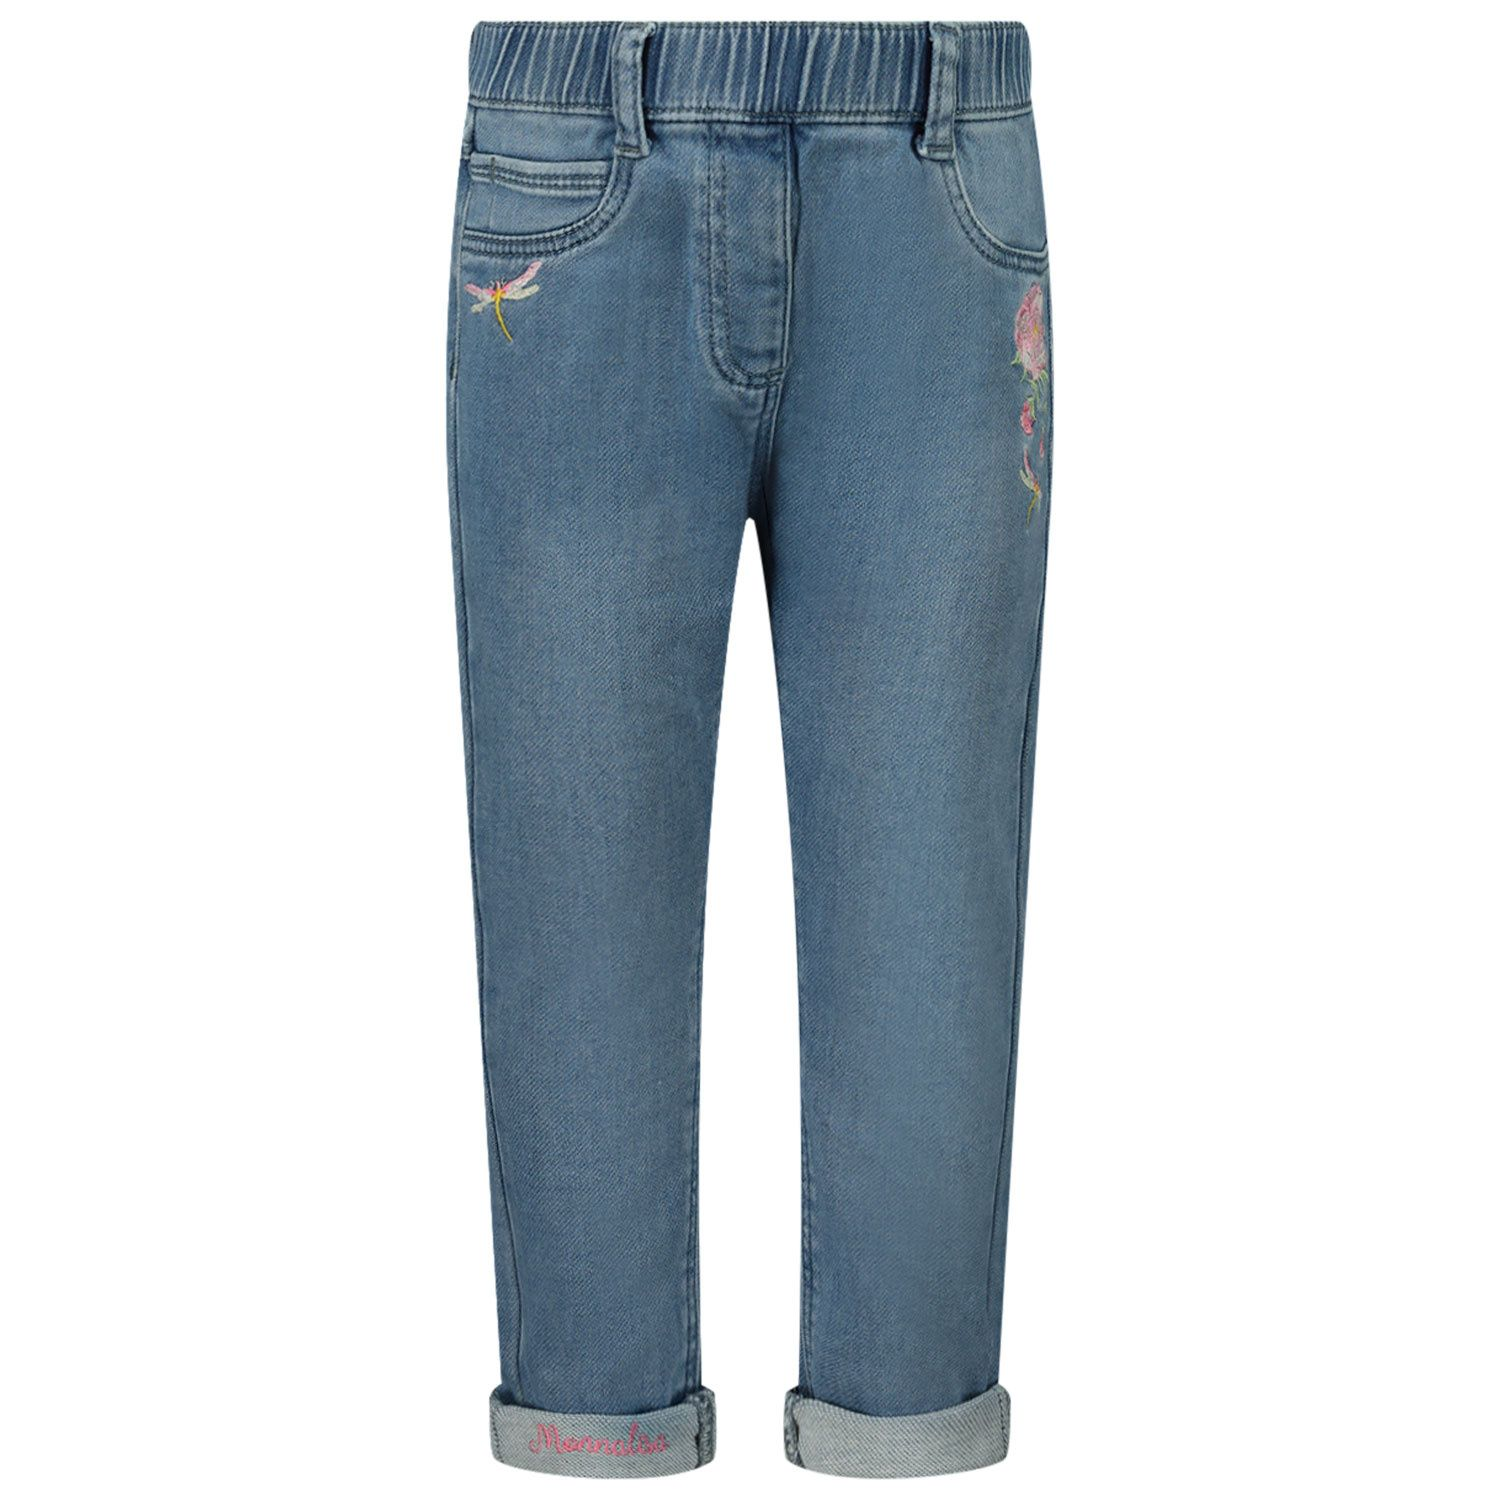 Picture of MonnaLisa 397403R5 baby pants jeans